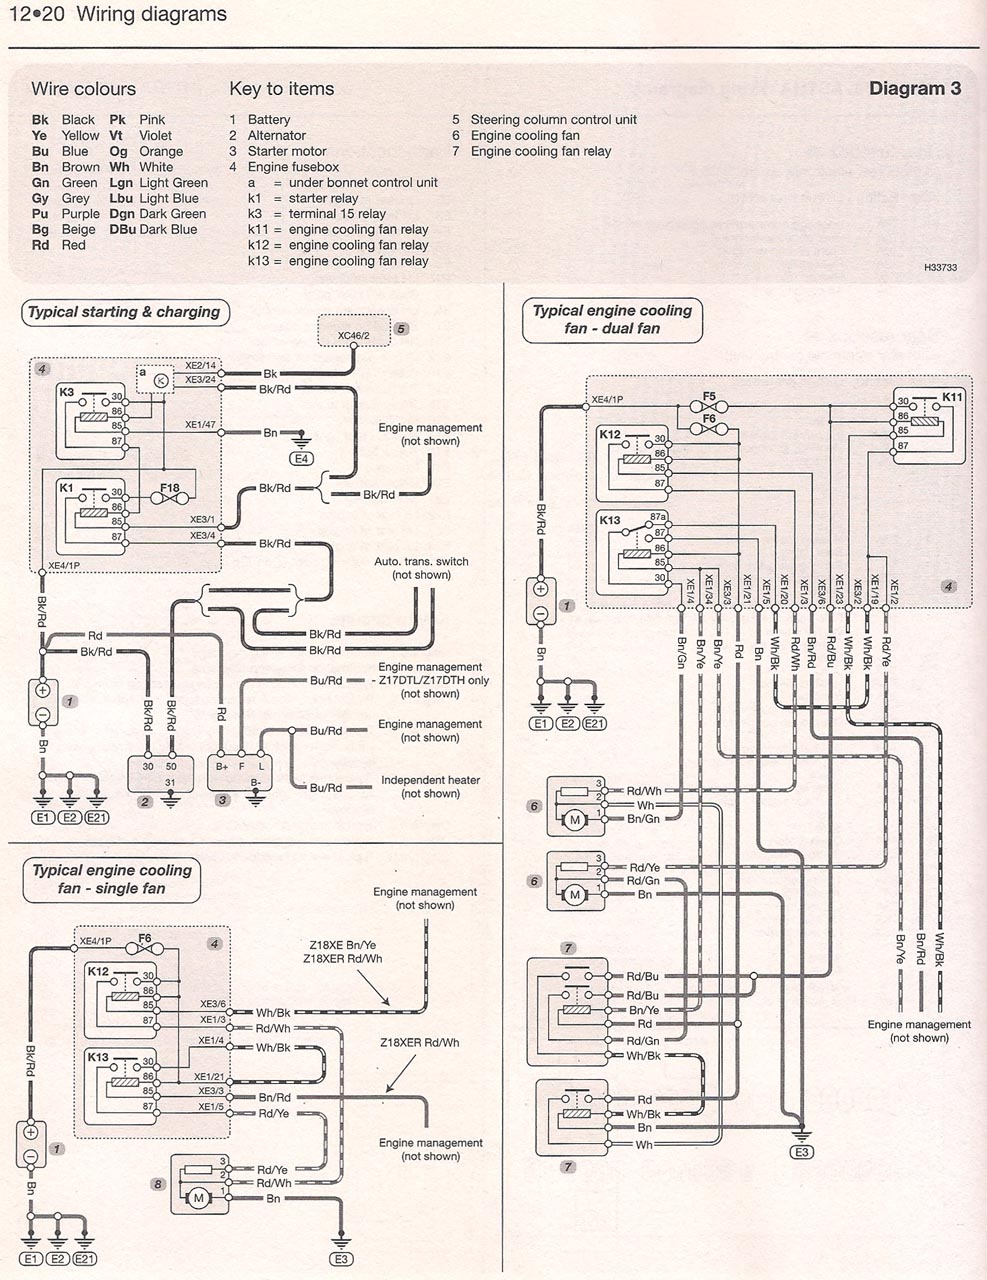 h3a astra h vxr wiring diagram vauxhall astra stereo wiring diagram at readyjetset.co